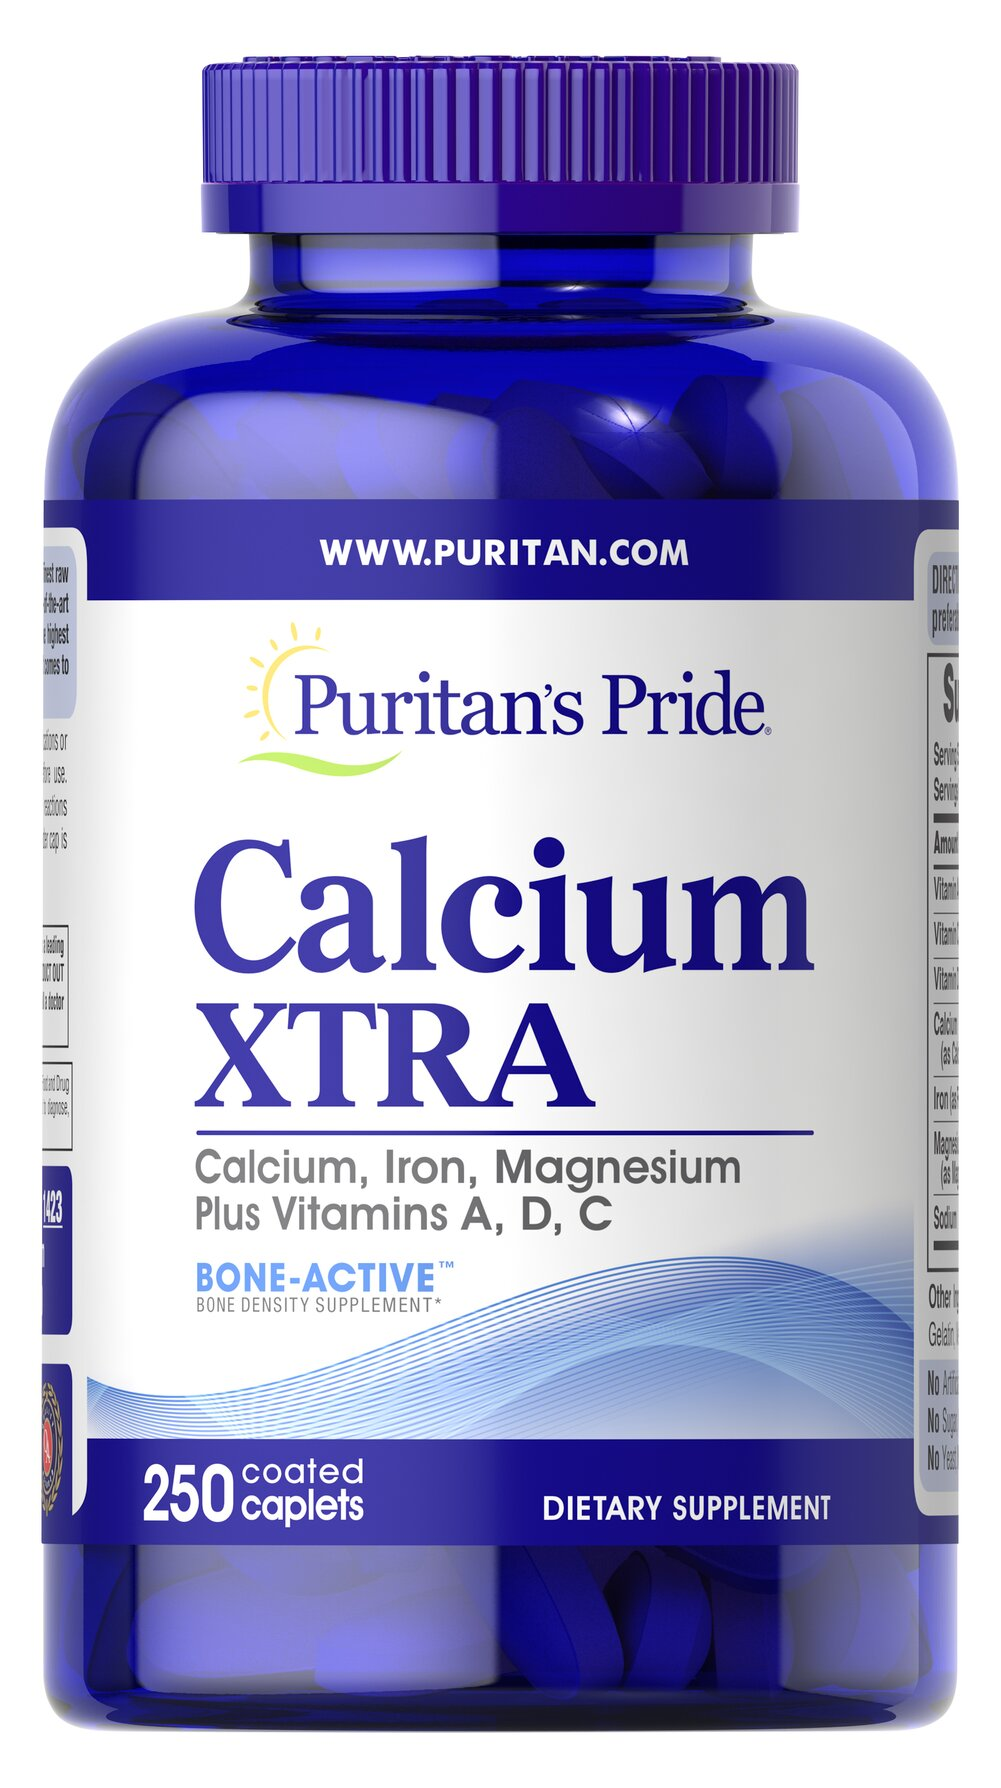 Calcium Xtra <p>Calcium is essential for building healthy bones and teeth.**  To be sure you are getting enough calcium, try Calcium Xtra tablets.  You get natural calcium plus added vitamins (vitamins A, C and D) and minerals (Iron and Magnesium) that work synergistically to give you maximum nutritional protection - in a NEW faster-acting formula.</p> 250 Caplets  $18.99